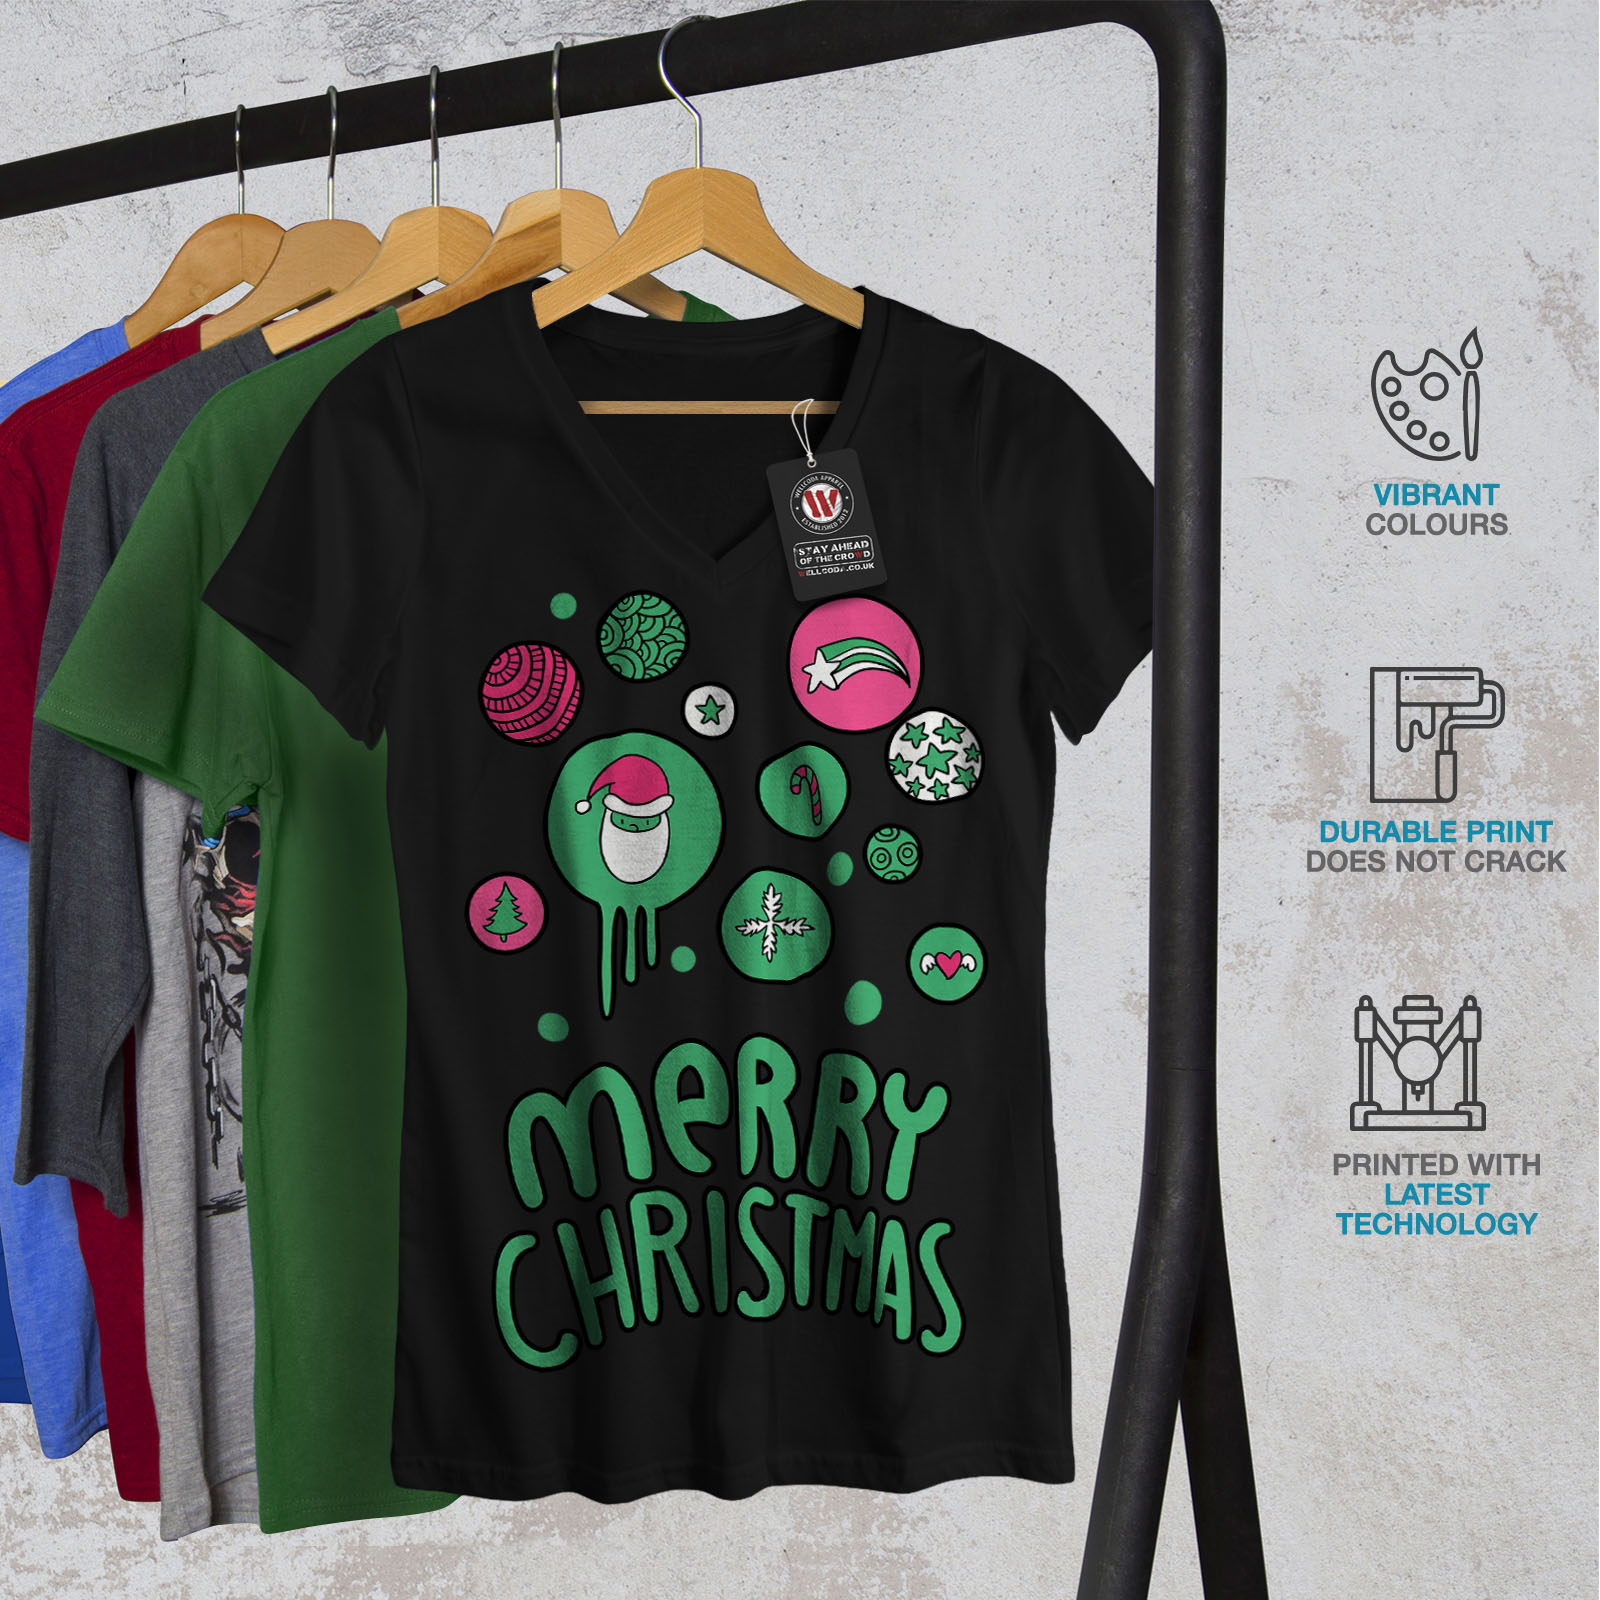 Wellcoda-Merry-Christmas-Fun-Womens-V-Neck-T-shirt-Holiday-Graphic-Design-Tee thumbnail 4